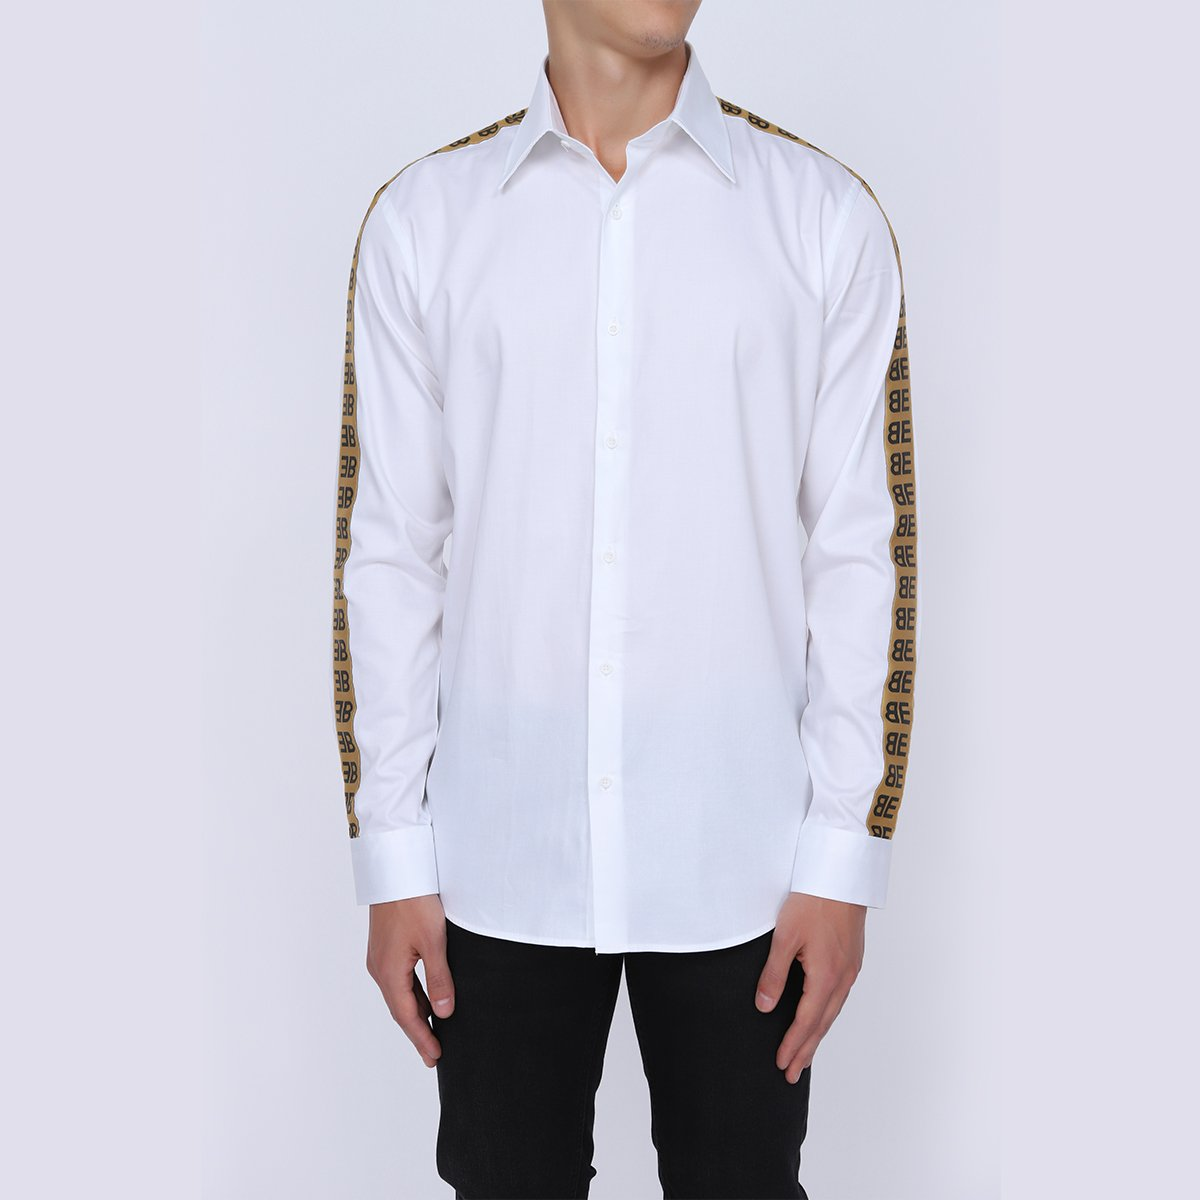 Straight Collar Formal White Shirt for Men